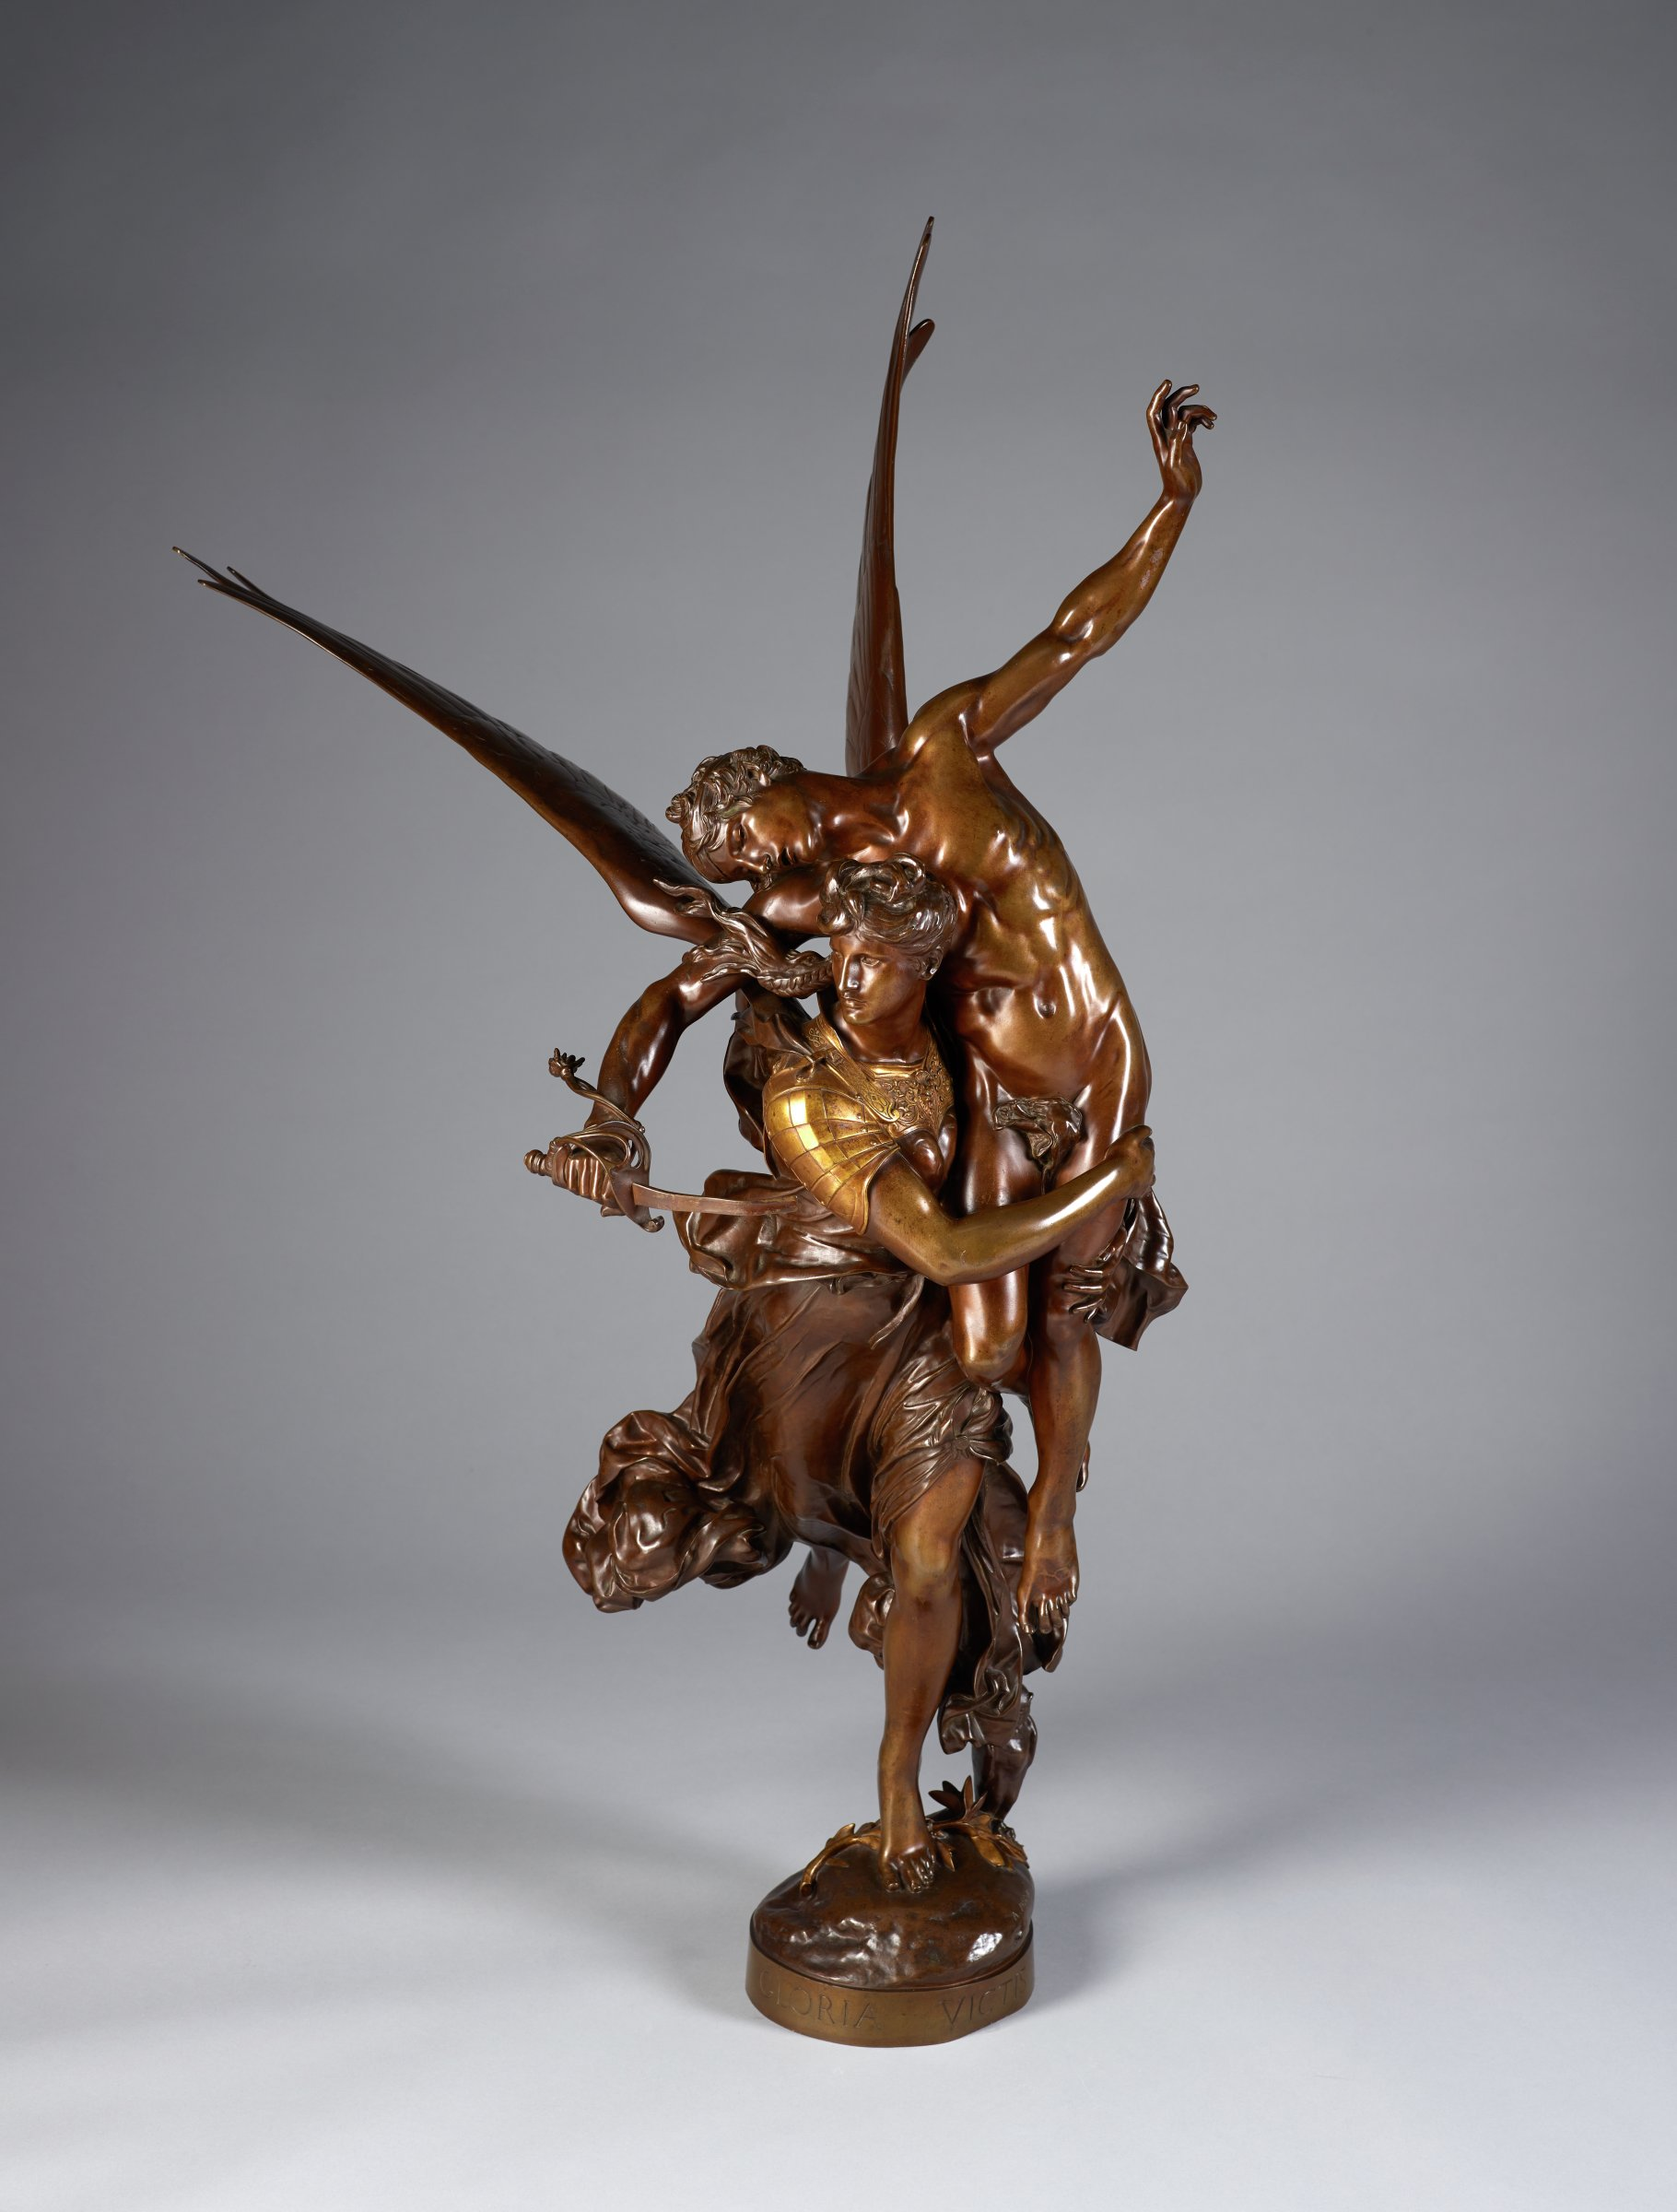 A winged woman figure wearing a long, flowing garment carries a nude male figure over her shoulder. The man stretches both arms out.